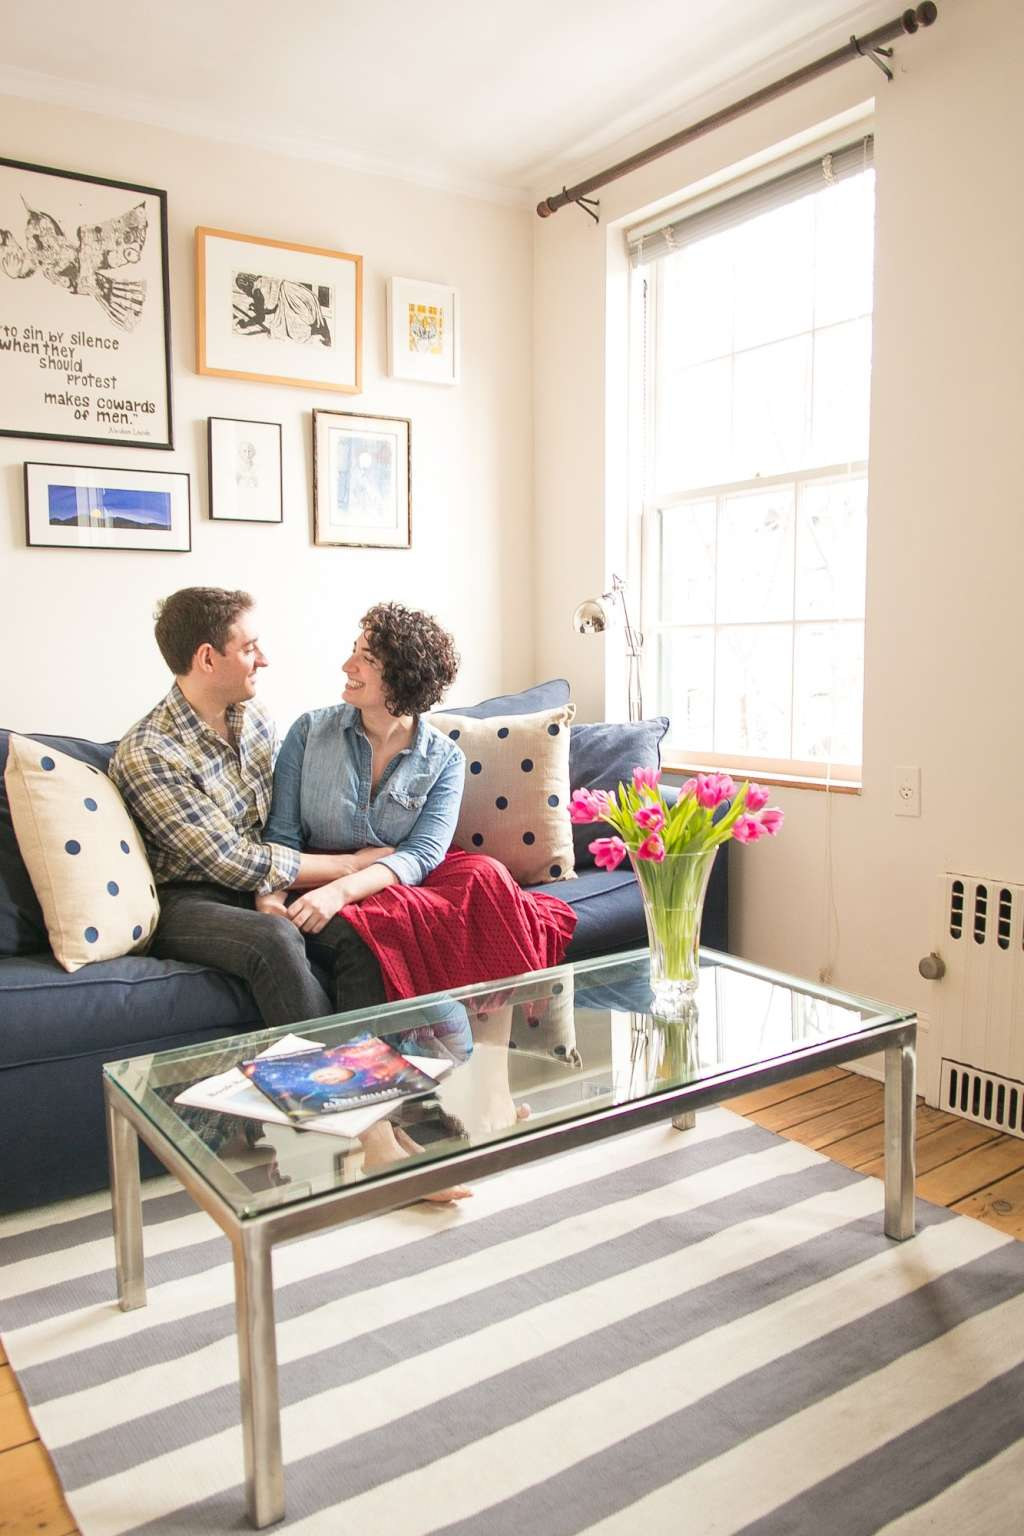 Small Space Sharing: 9 Smart Tips for Squeezing into a Small Home With Someone Else